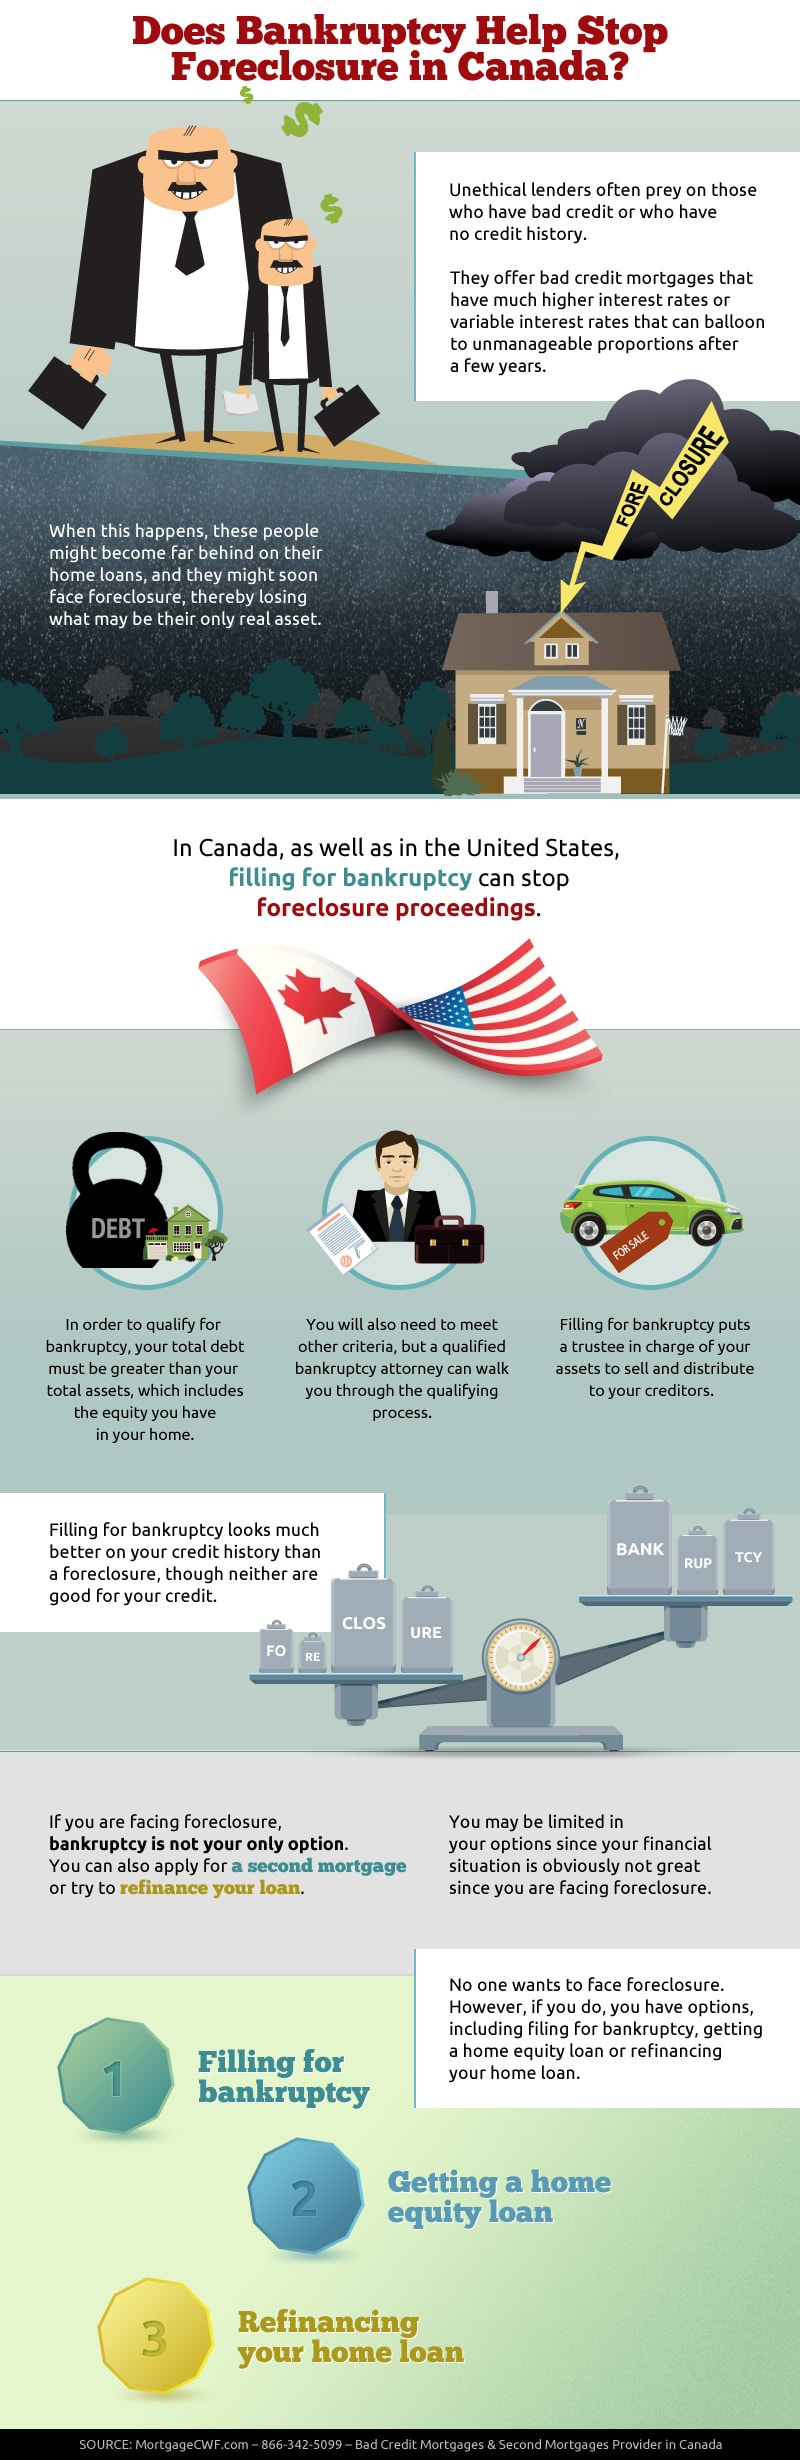 Does Bankruptcy Help Stop Foreclosure in Canada - Infographic